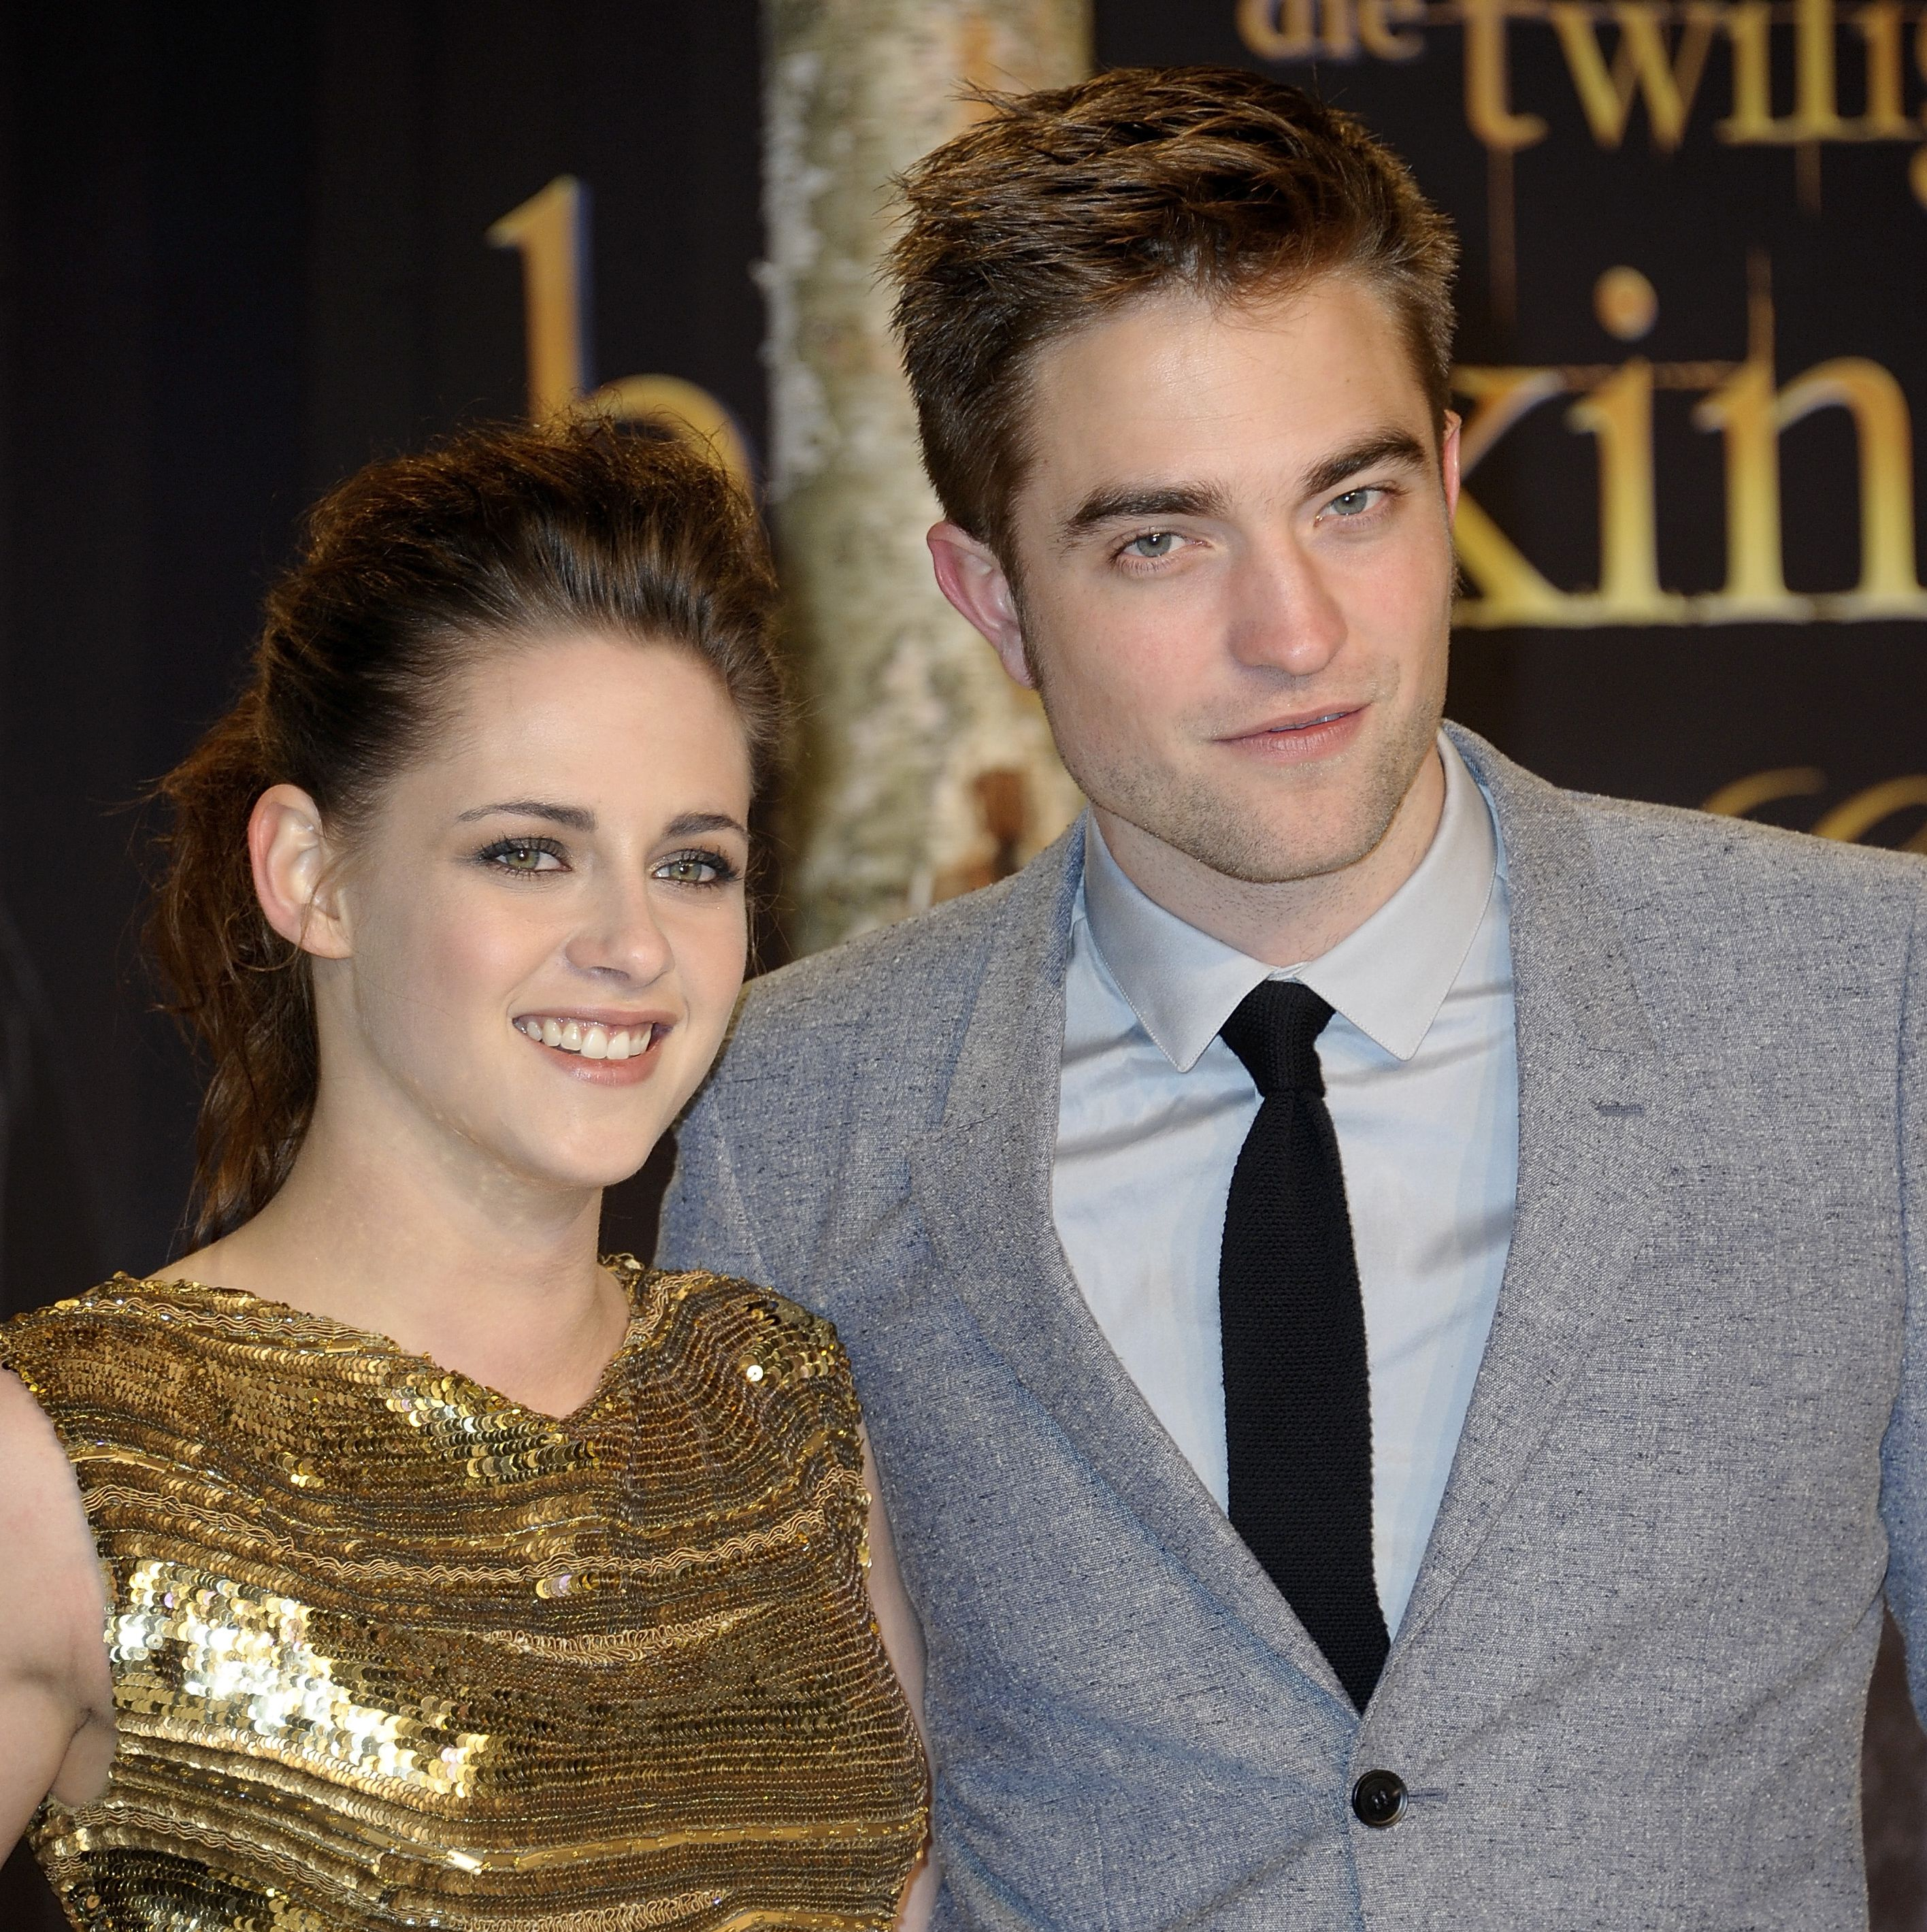 Kristen Stewart and Robert Pattinson Teenyboppers everywhere freaked out when these two—who costarred in the Twilight series—got together. But they broke up after three years together when Kristen was photographed by paparazzi kissing married director Rupert Sanders.